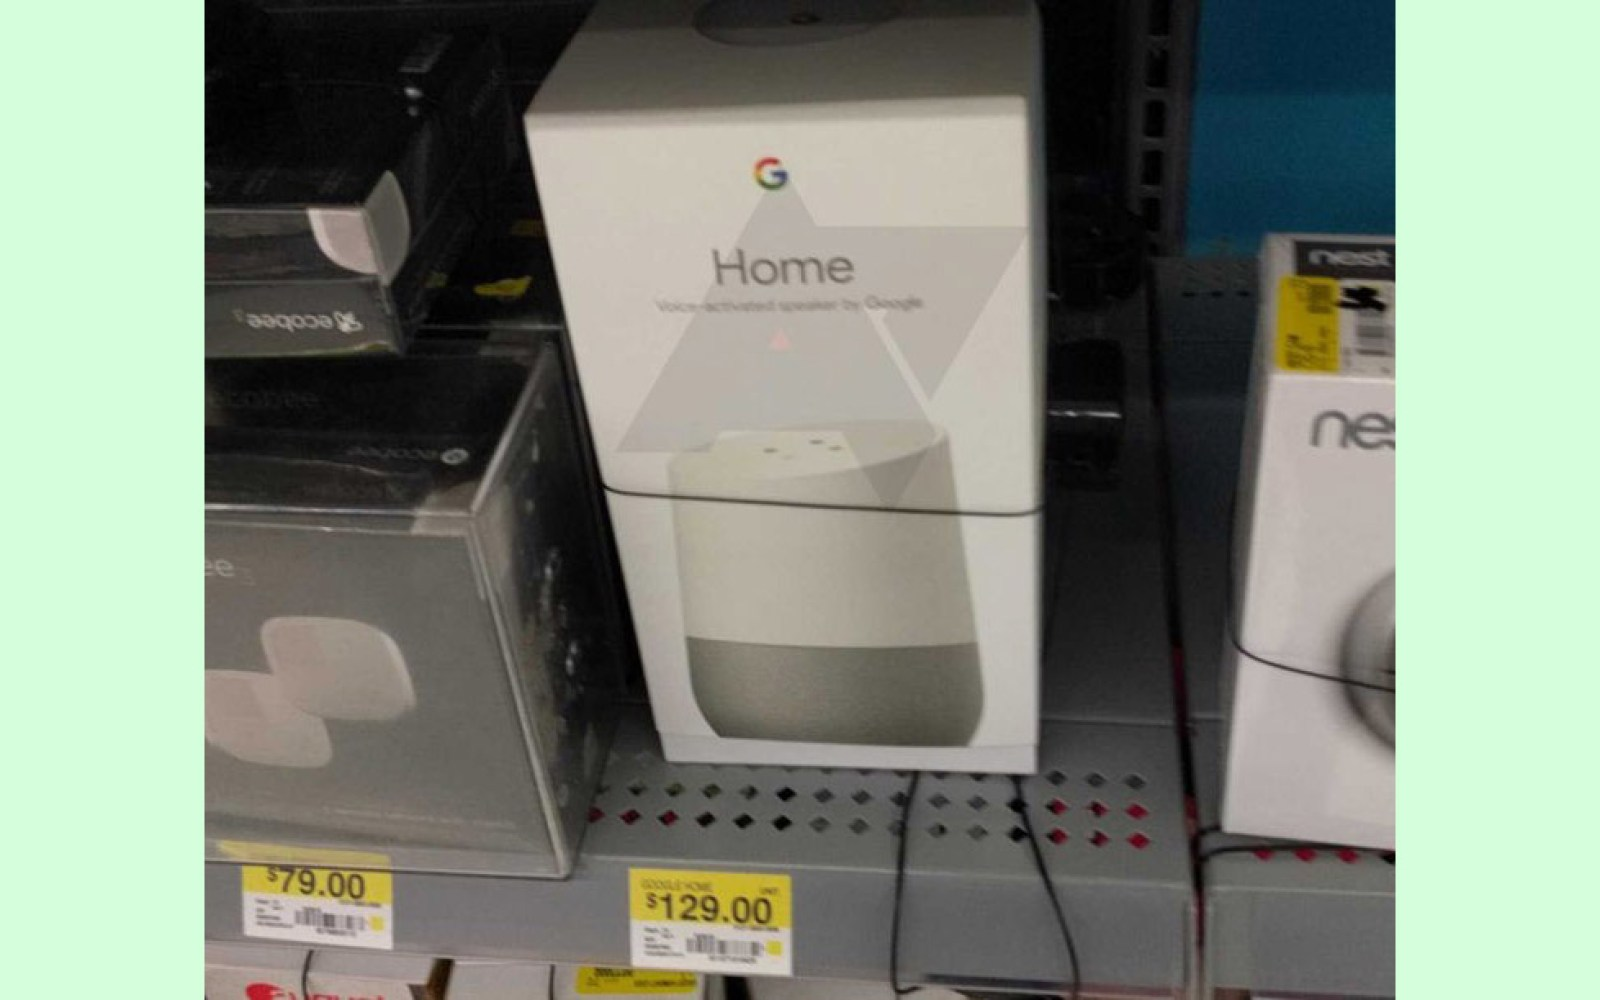 Google Home popping up at some Walmart stores, but you still can't buy it